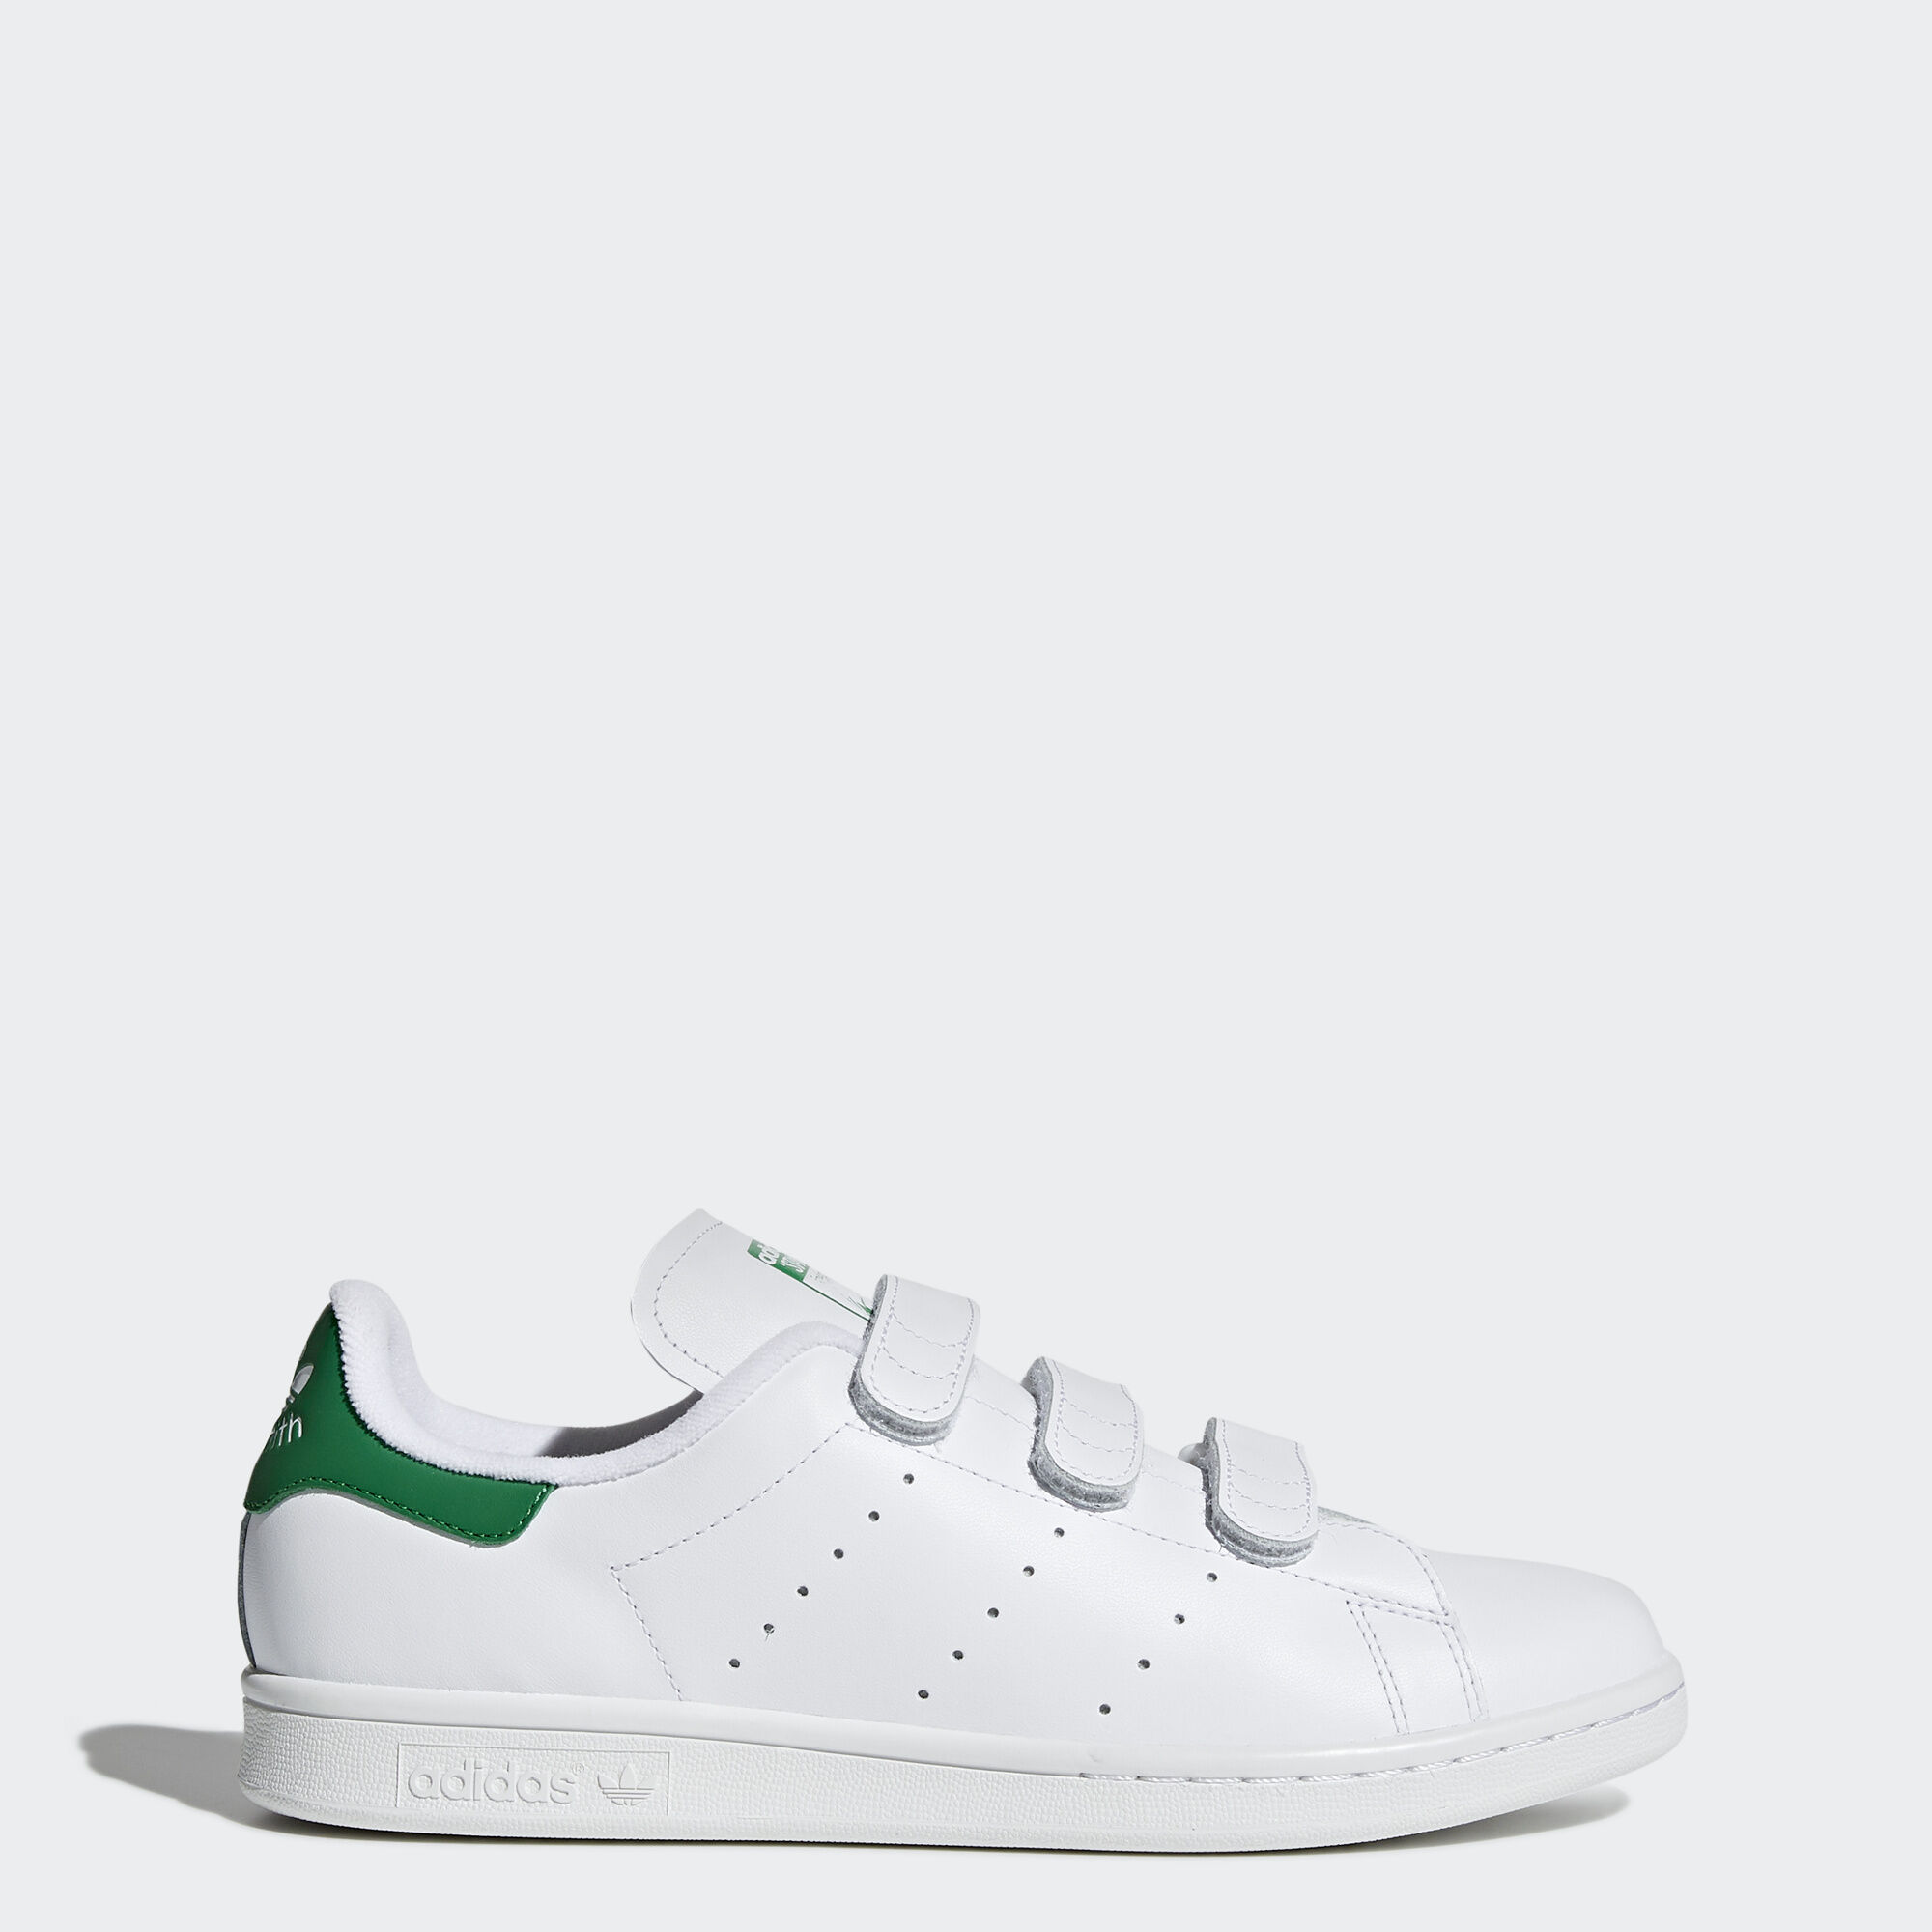 cdiscount stan smith